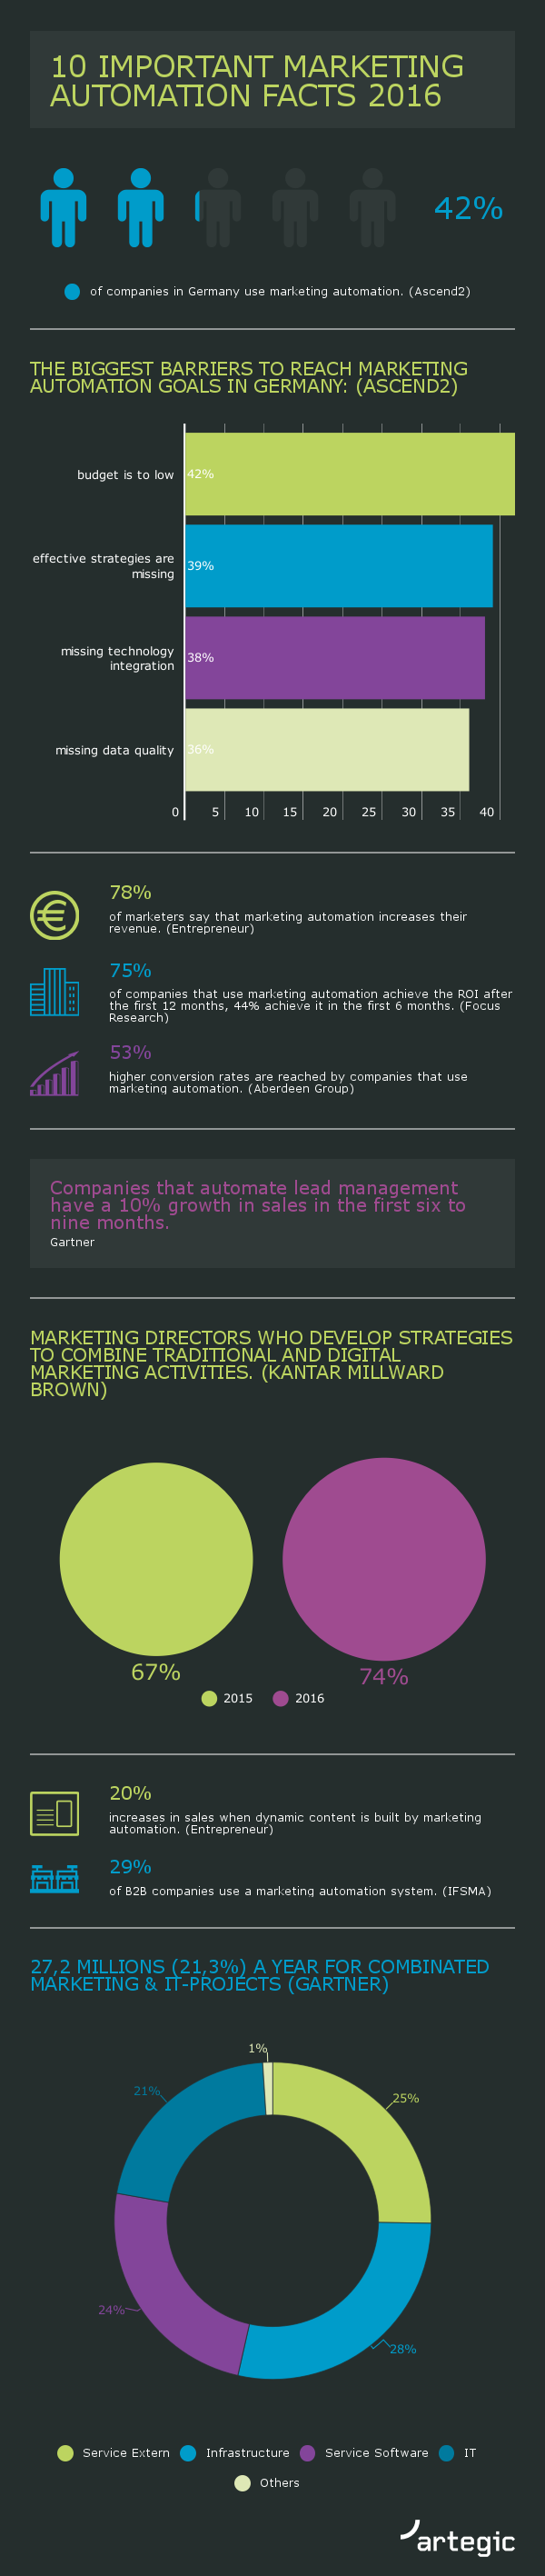 10 Important Marketing Automation Facts 2016